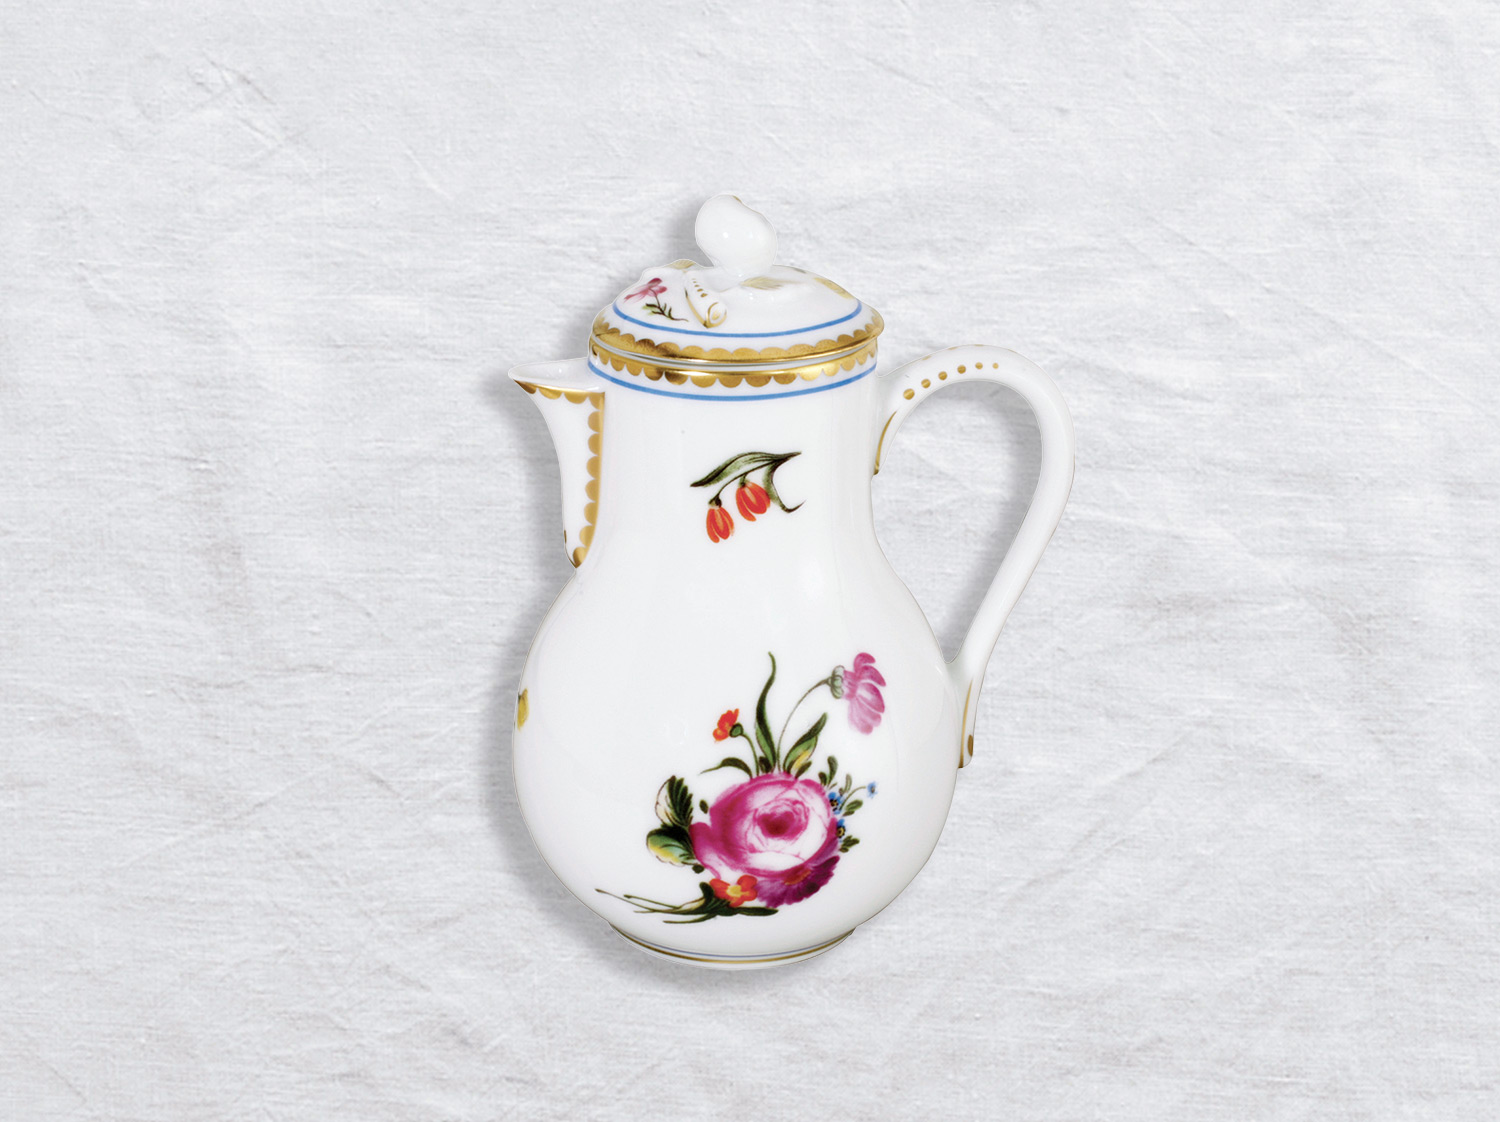 Pot à crème 6 tasses en porcelaine de la collection A la reine Bernardaud